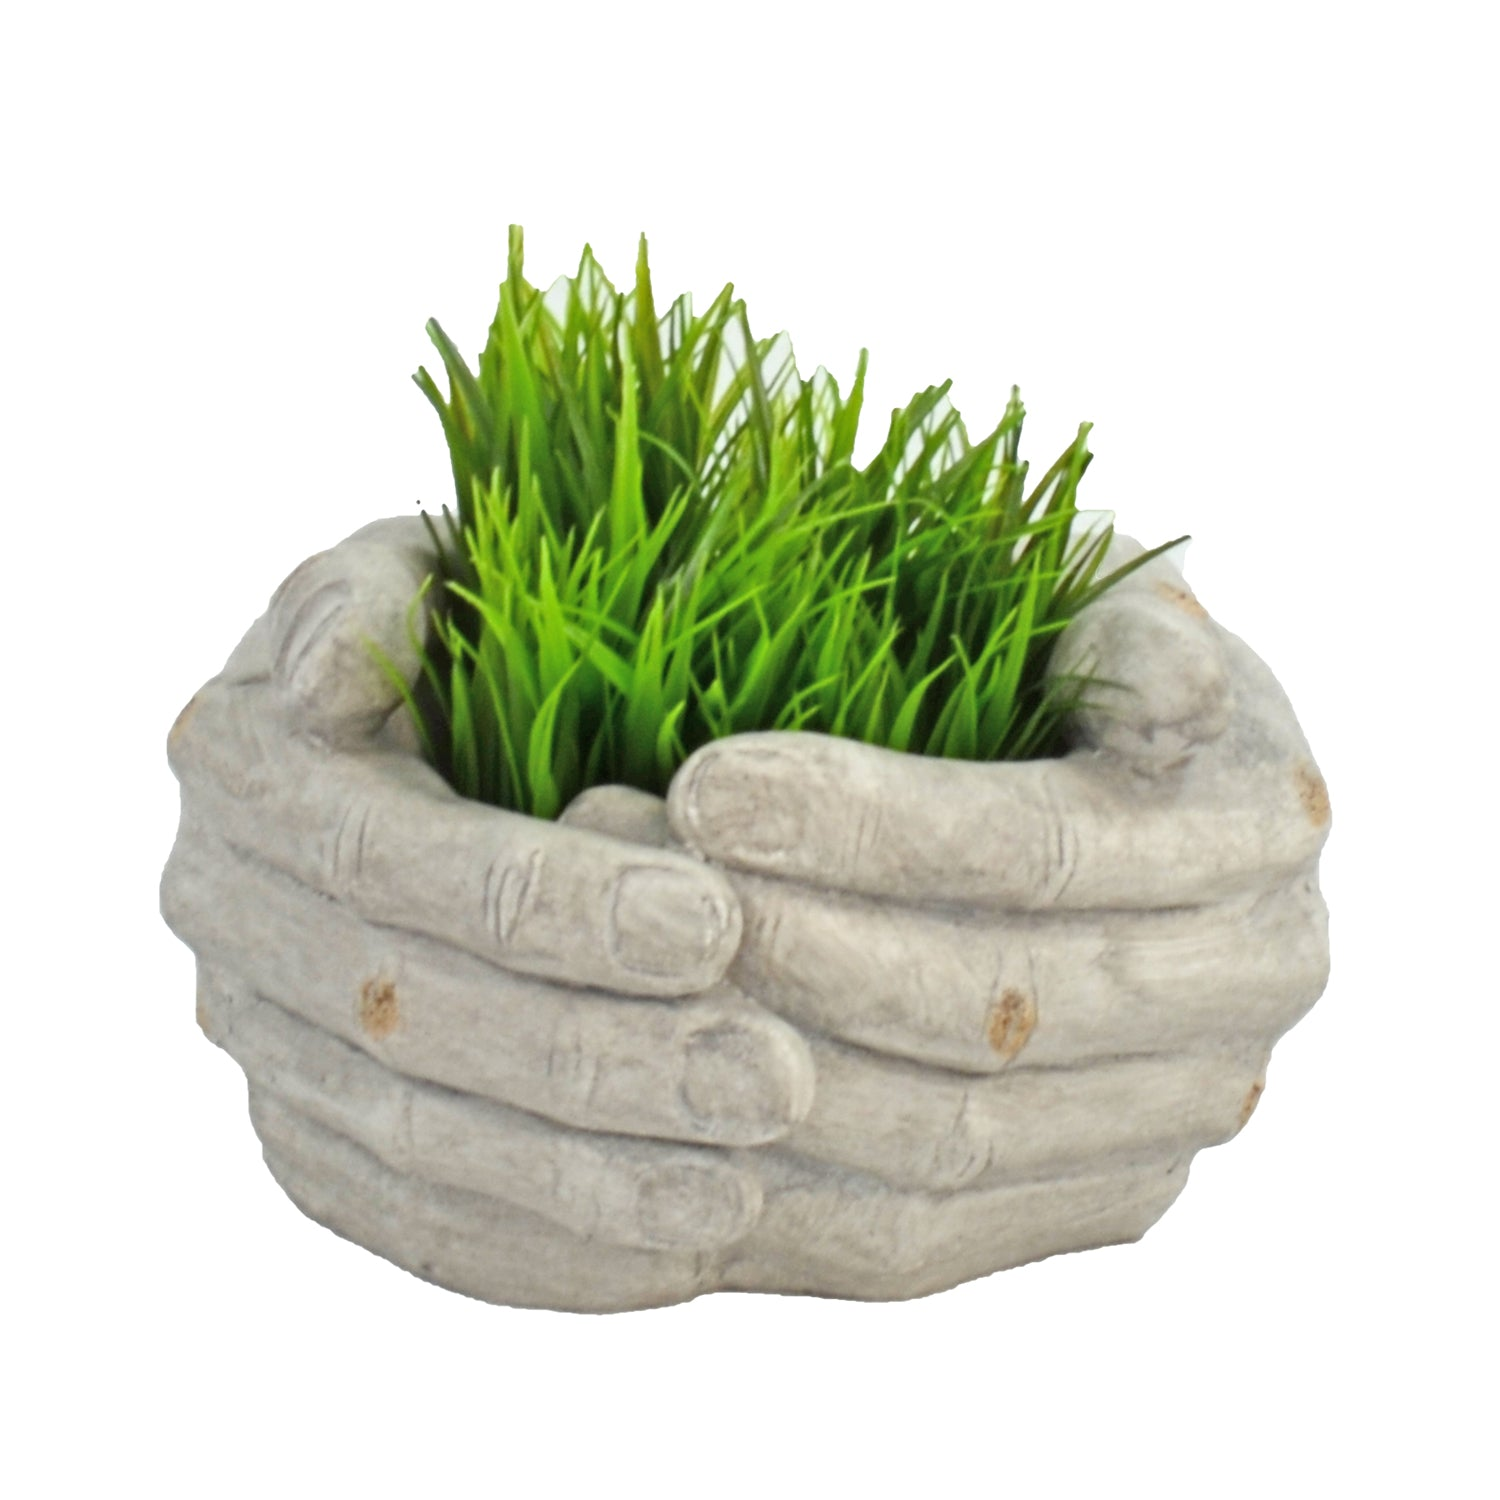 Solstice Sculptures Cupped Hands Planter 19cm Weathered Stone Effect - Ruby's Garden Boutique